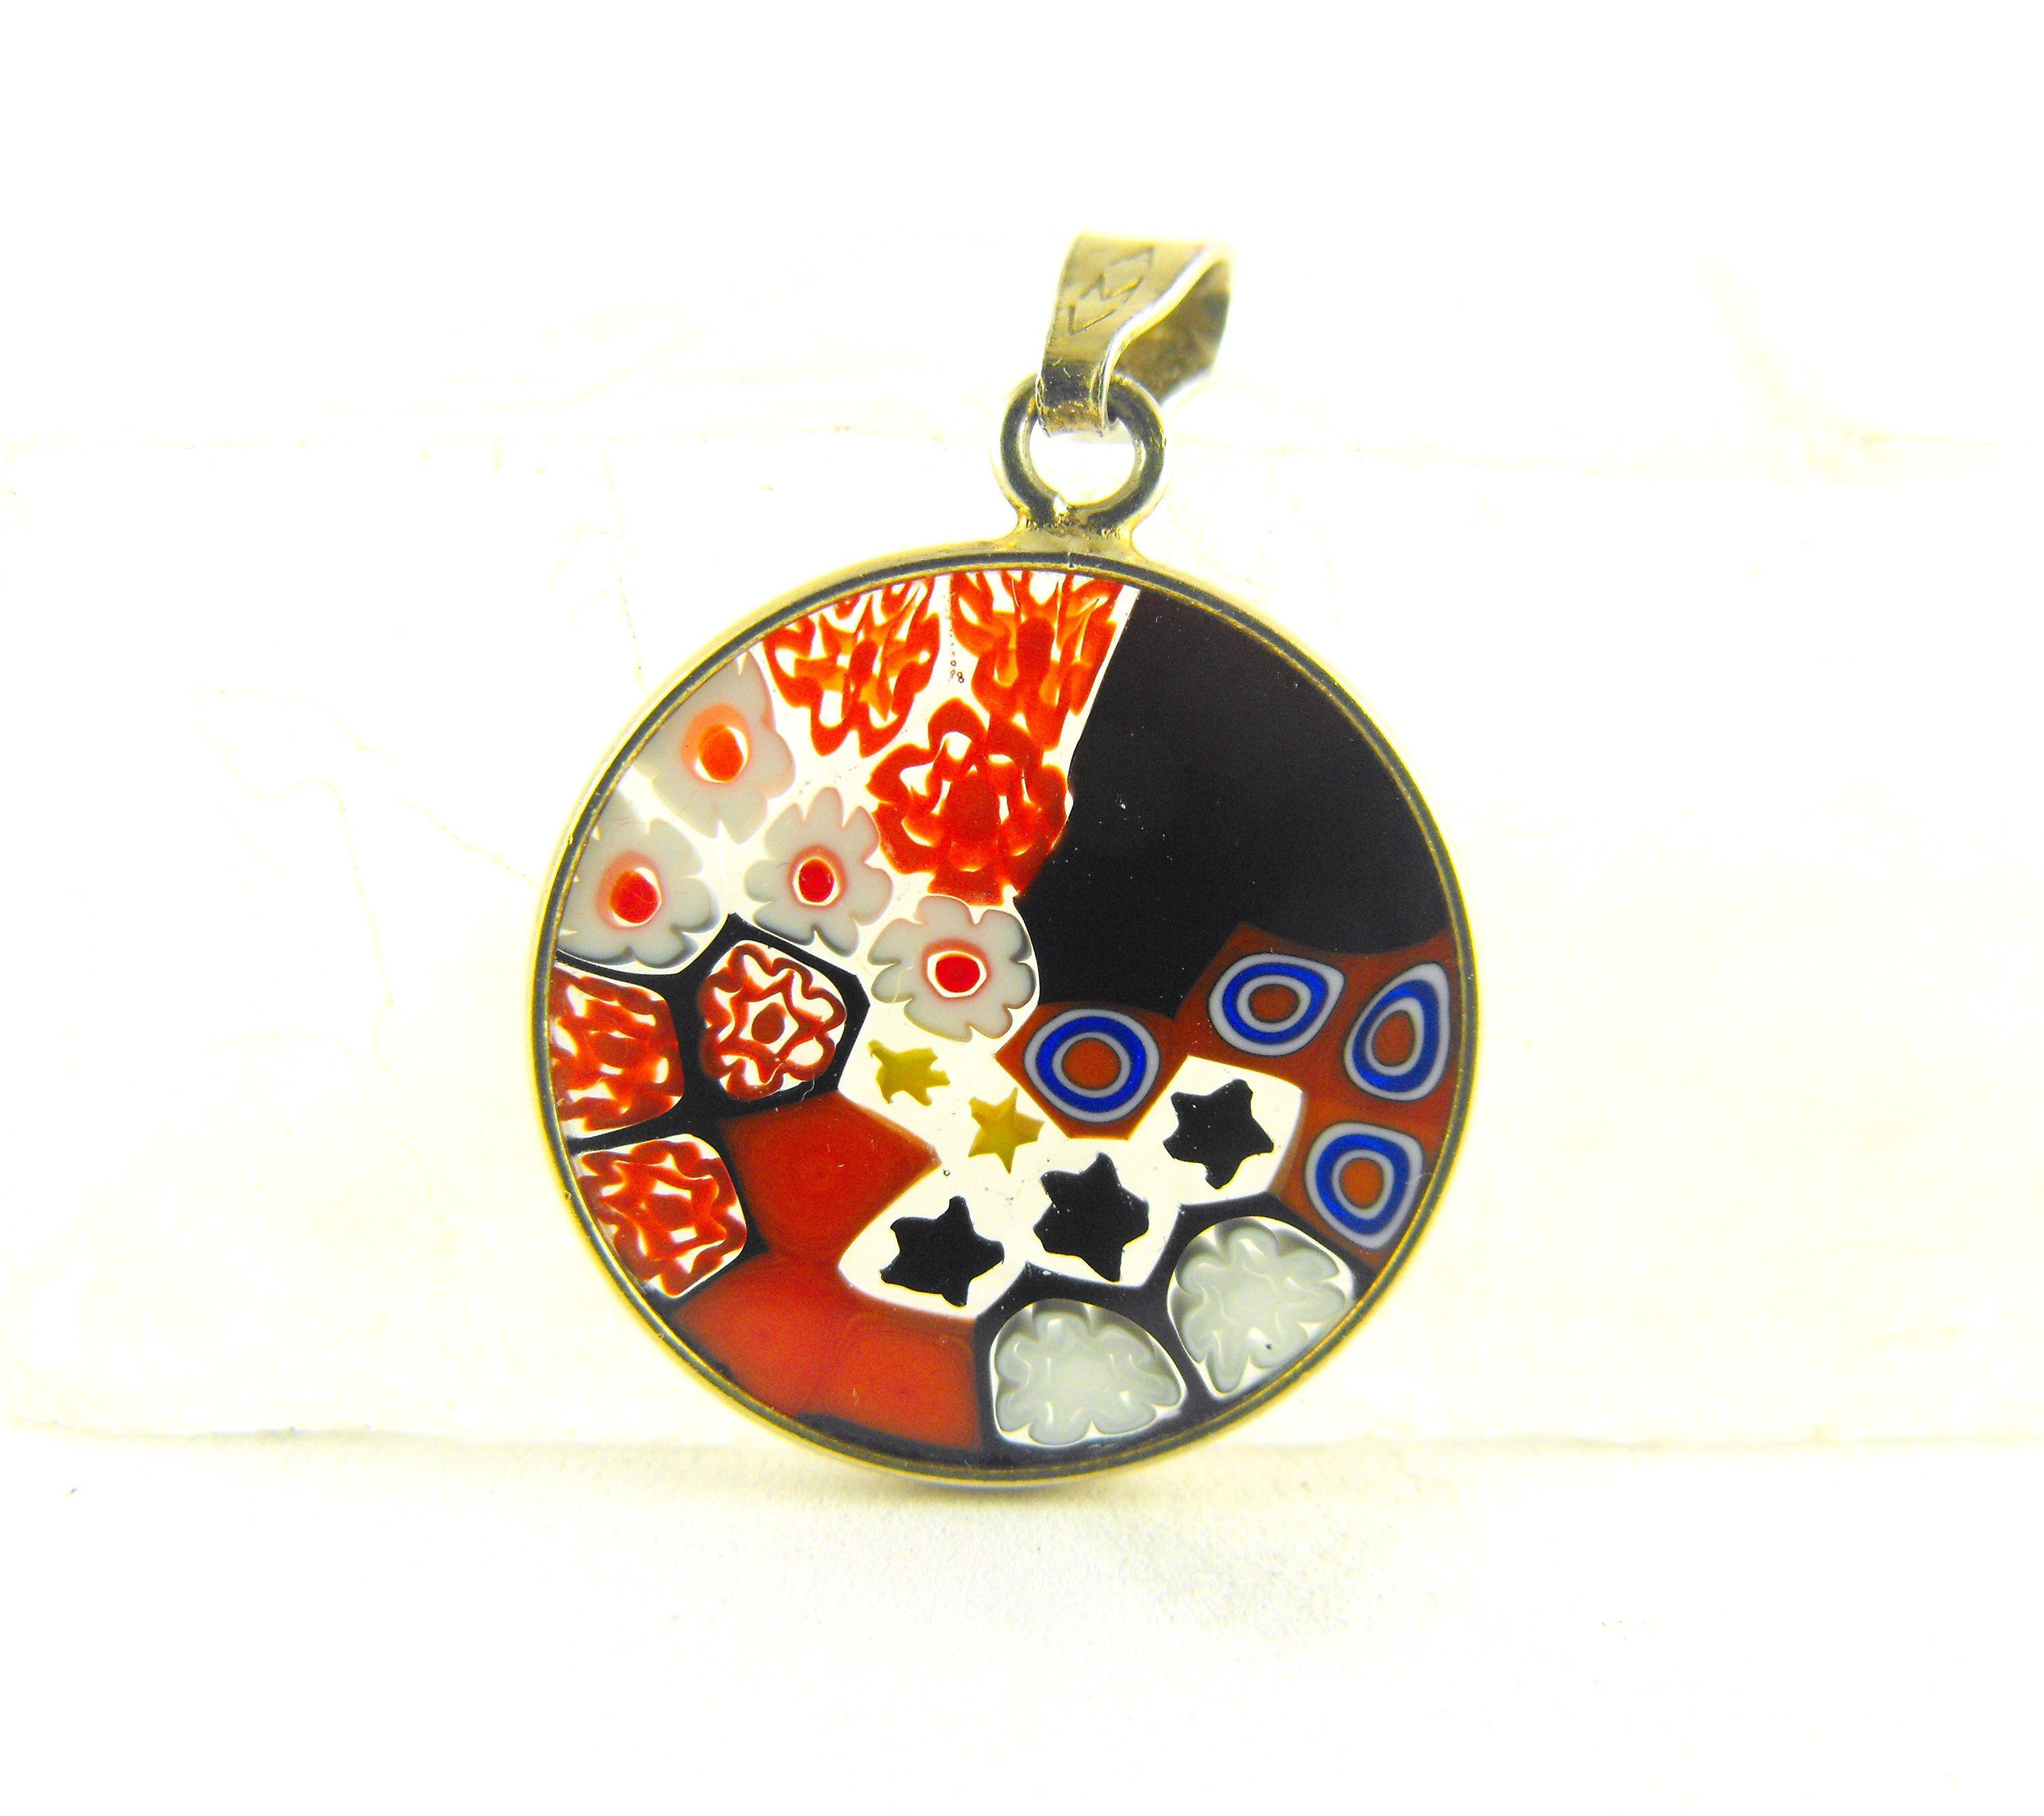 Authentic murano glass pendant sterling vermeil bezel set glass in